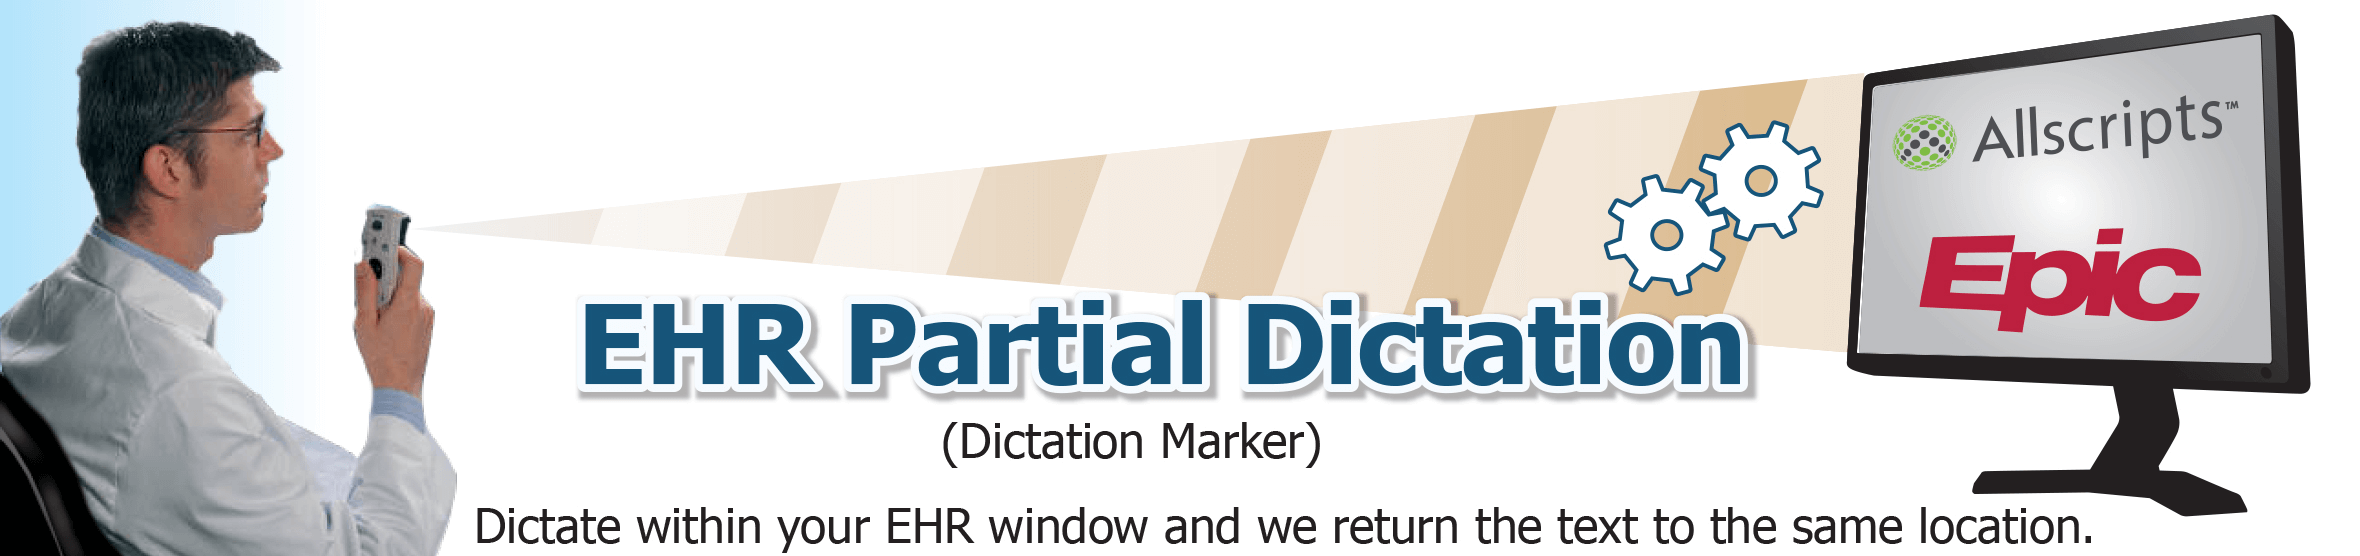 EHR Partial Dictation